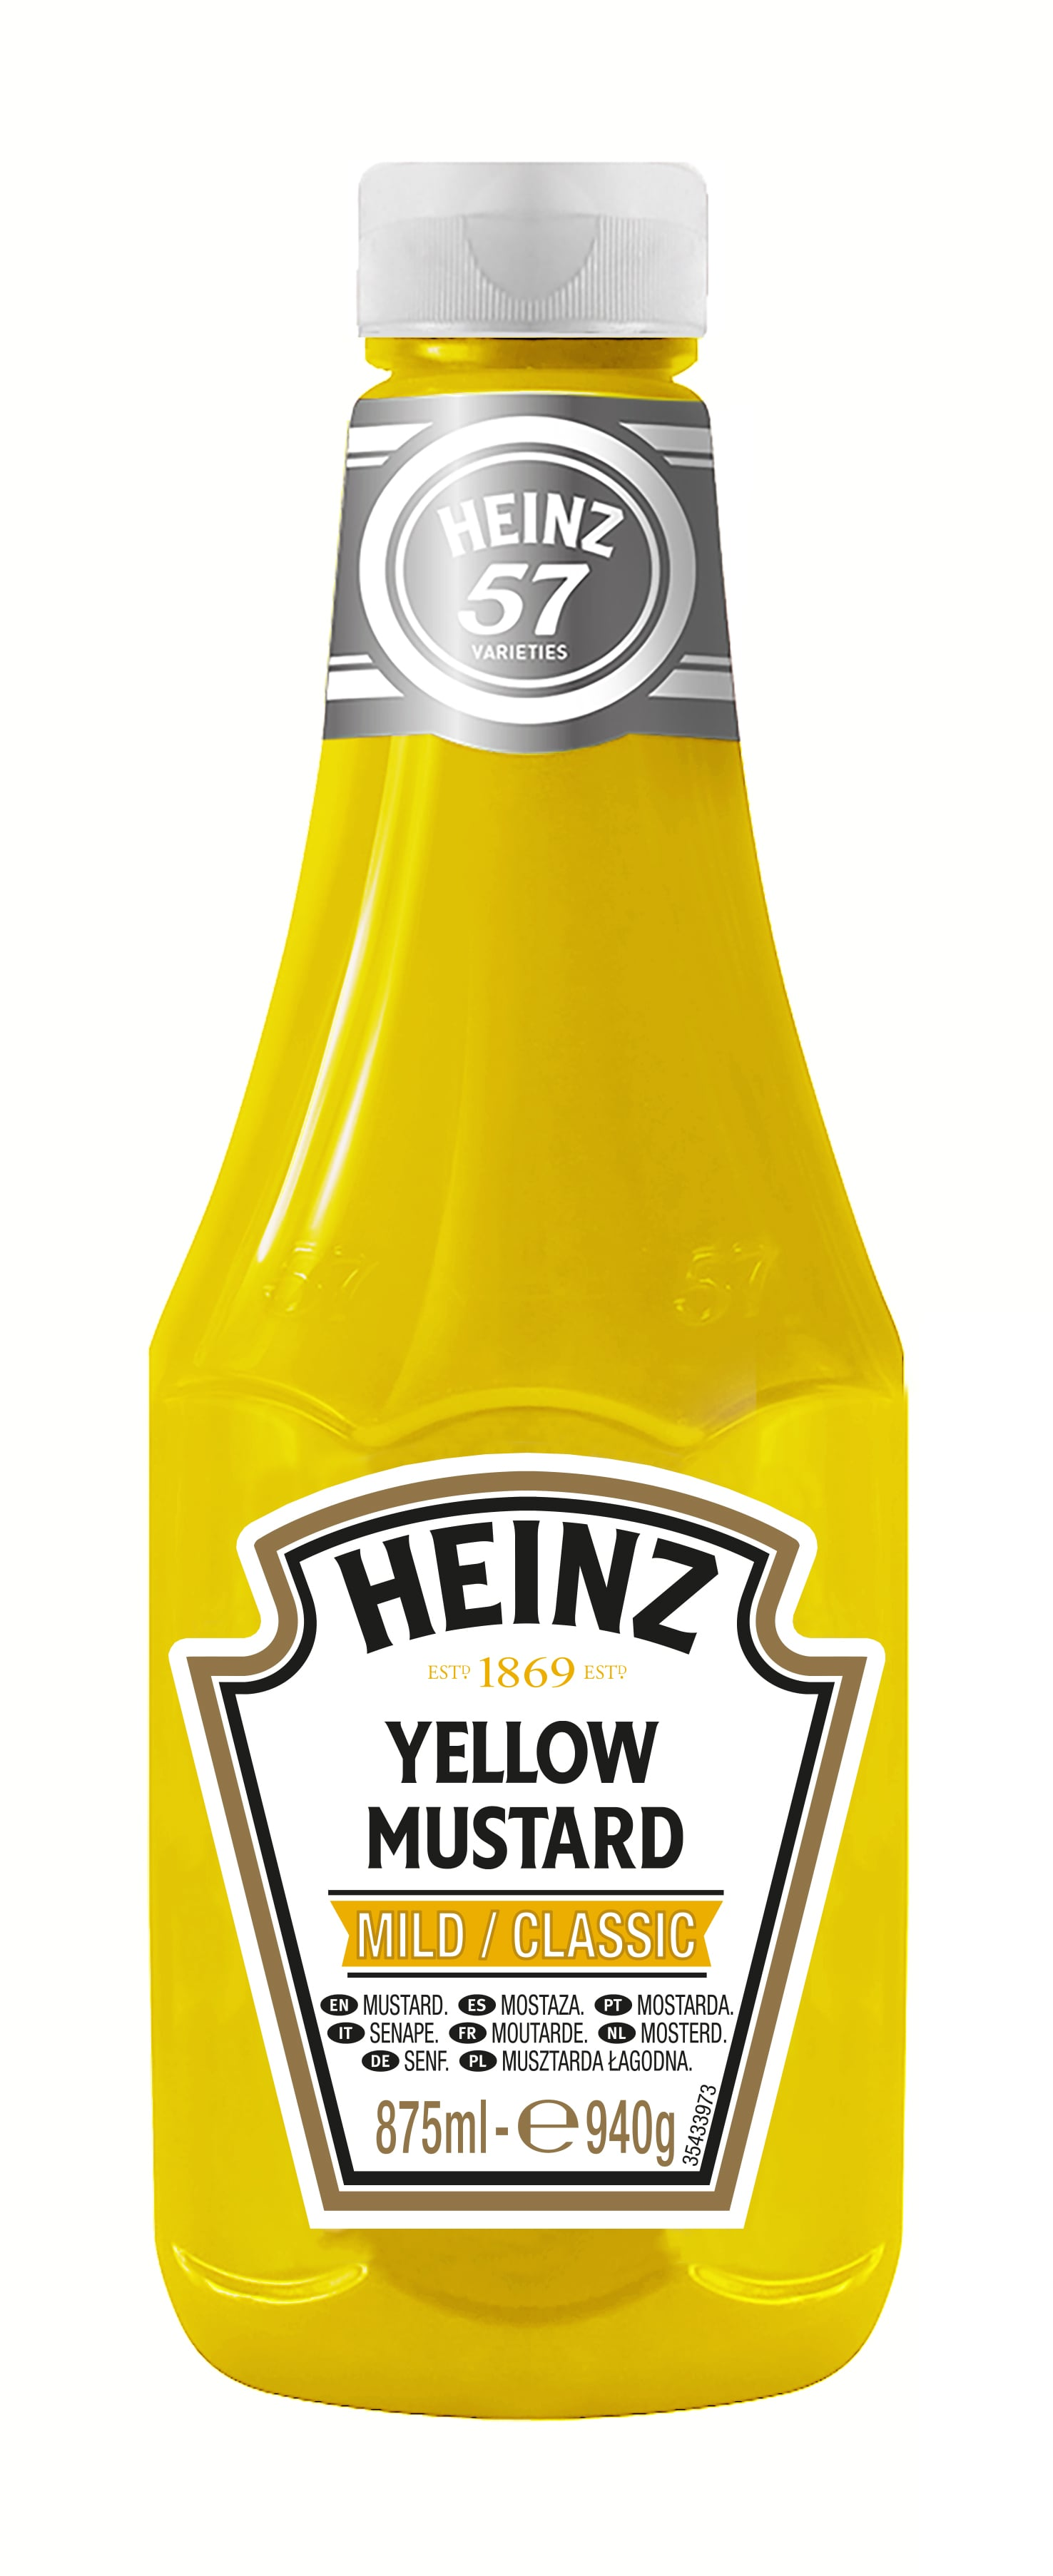 Heinz Yellowmustard 875ml image